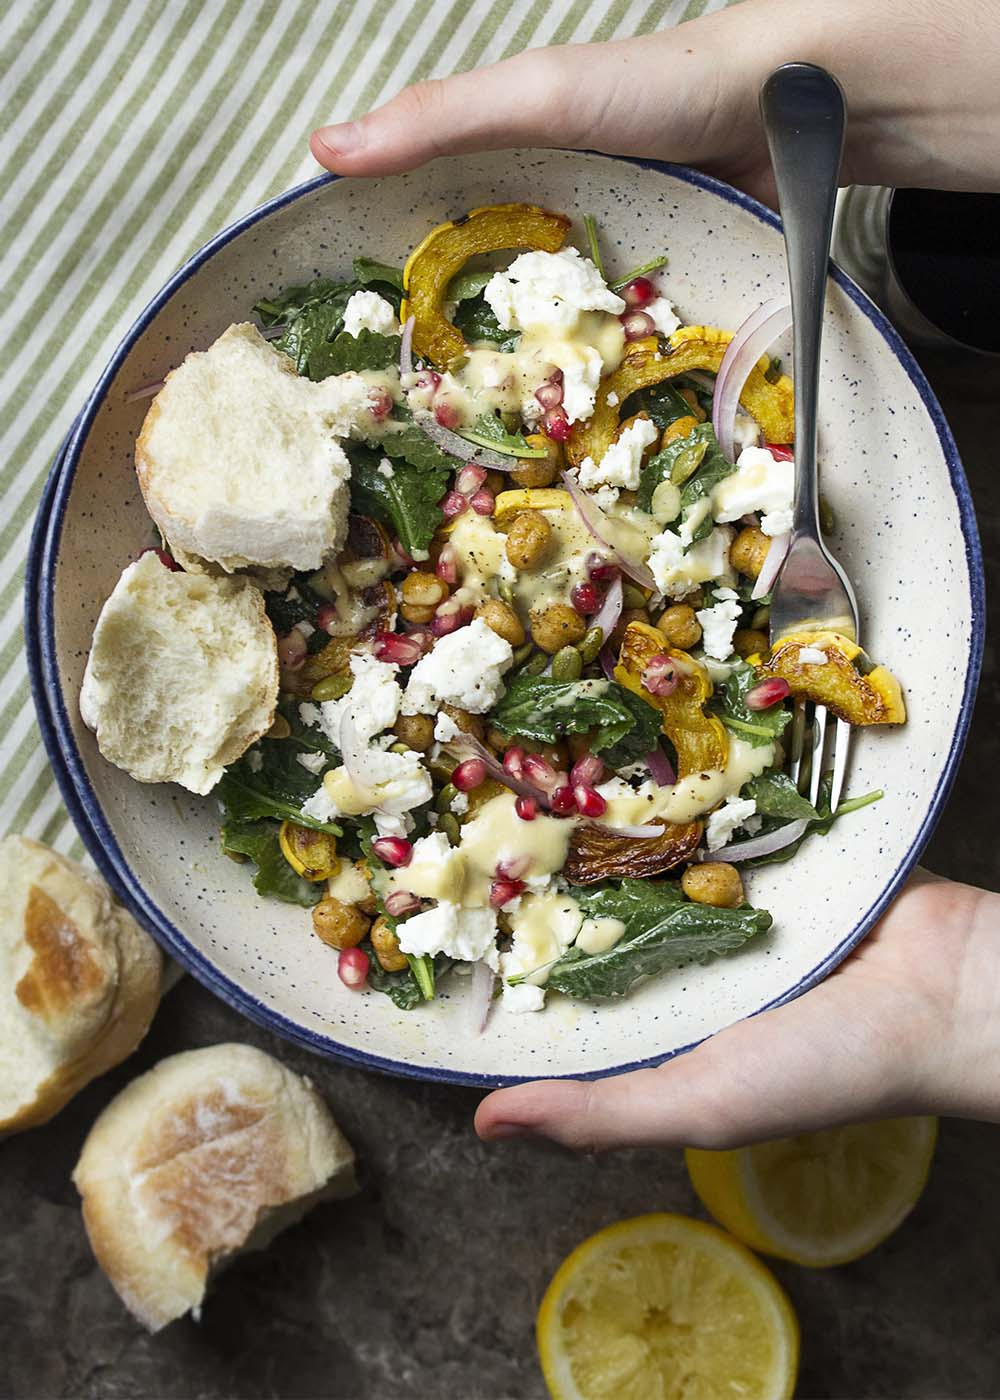 Hands holding up a bowl of roasted delicata squash salad with kale and chickpeas.